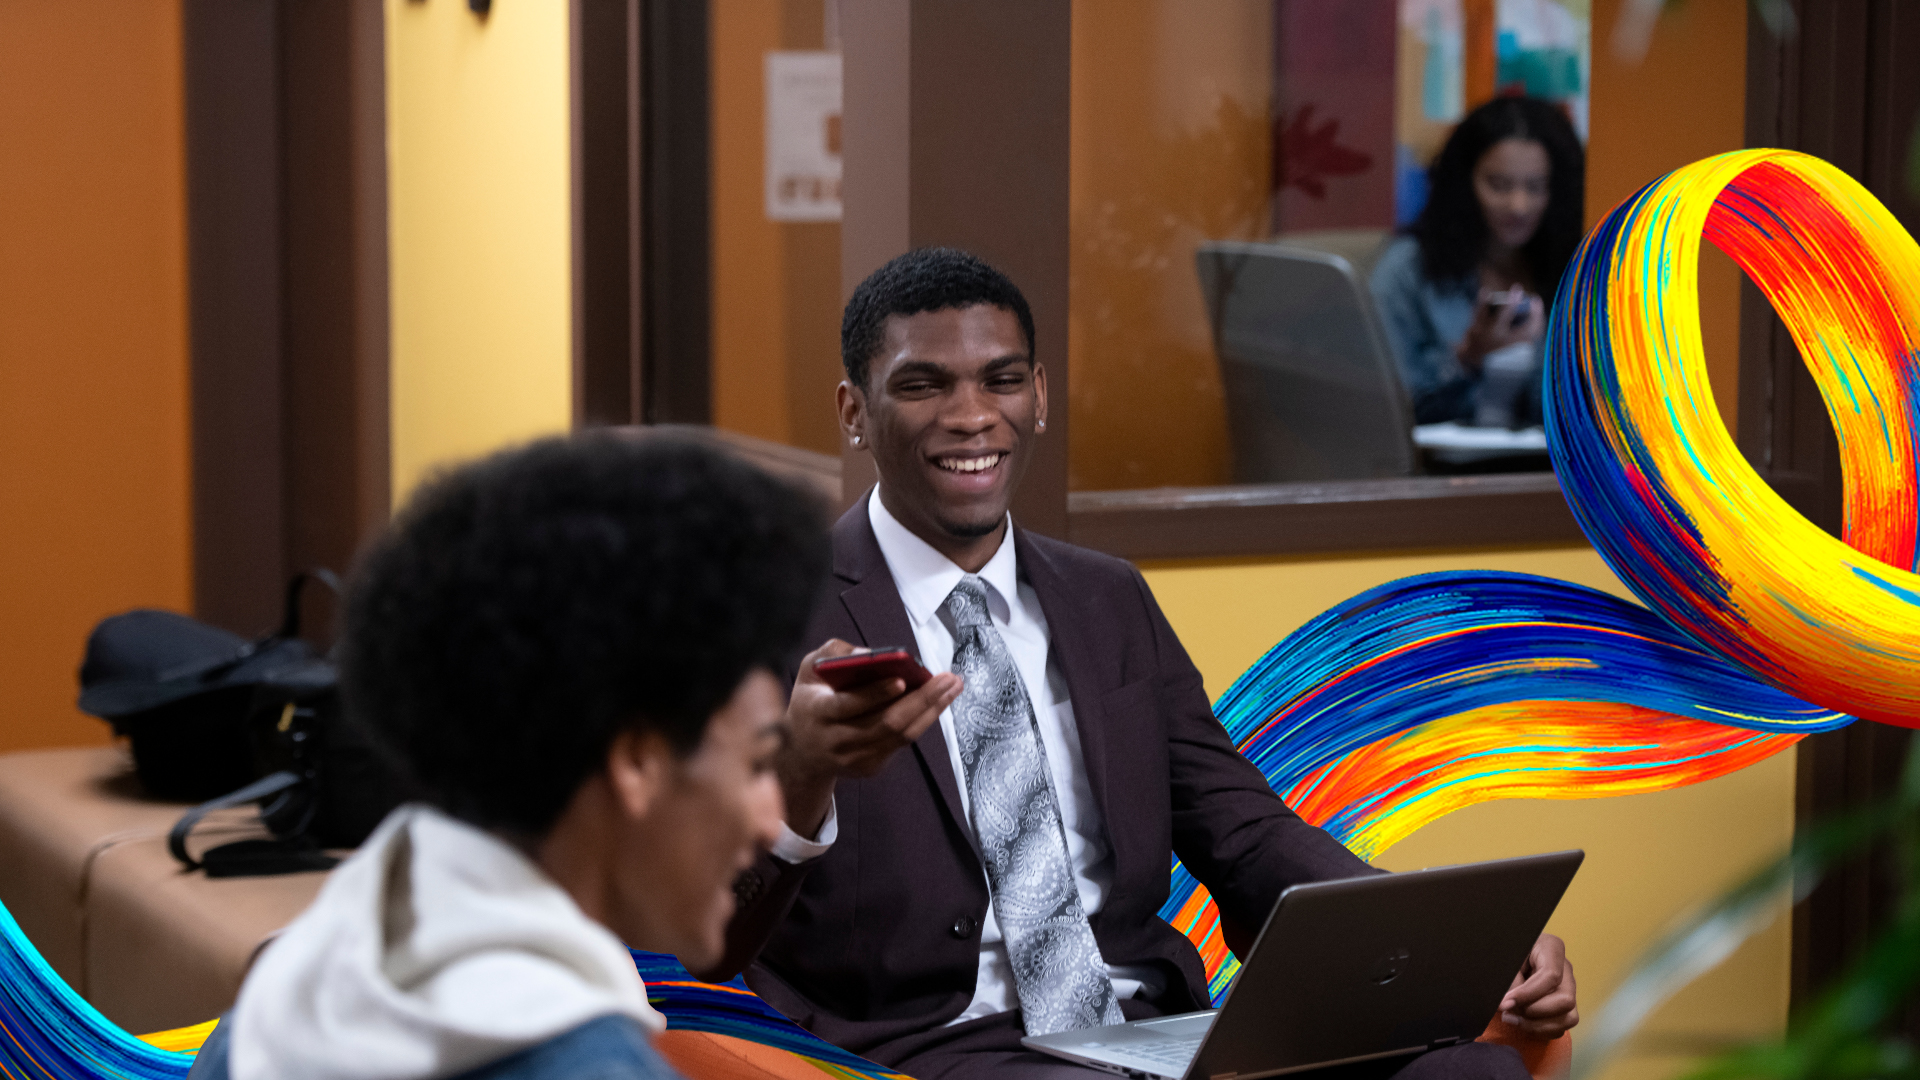 From left, UCI students Eeron D. Wilson II, and Chasen Greene chat at the CBCRR office. photo: Steve Zylius/UCI Center for Black Cultures, Resources & Research (CBCRR) at the UCI student center photo:  Steve Zylius/UCI